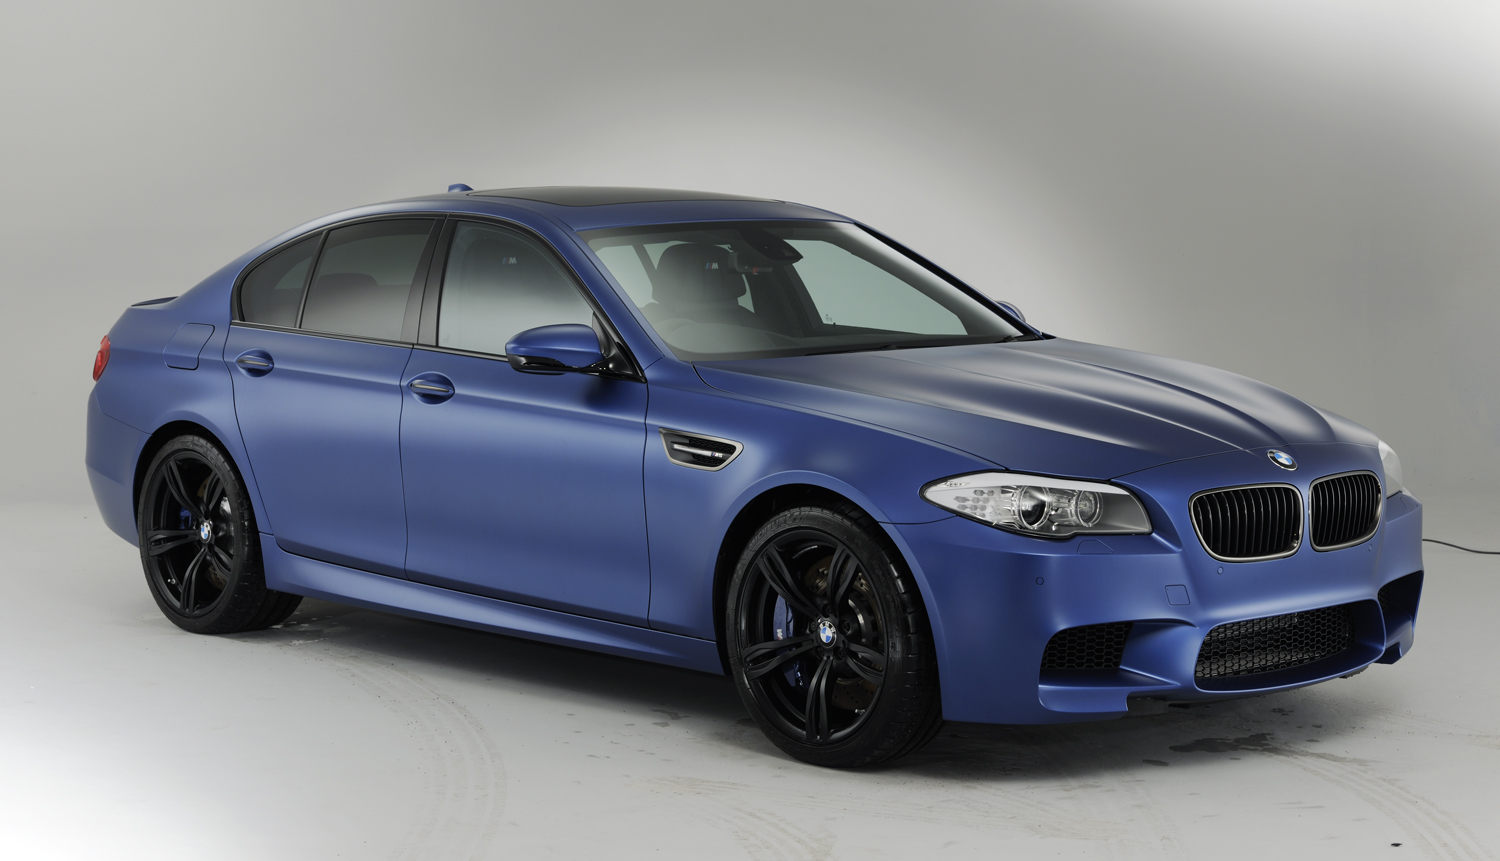 2018 BMW M5 UK Version photo - 3